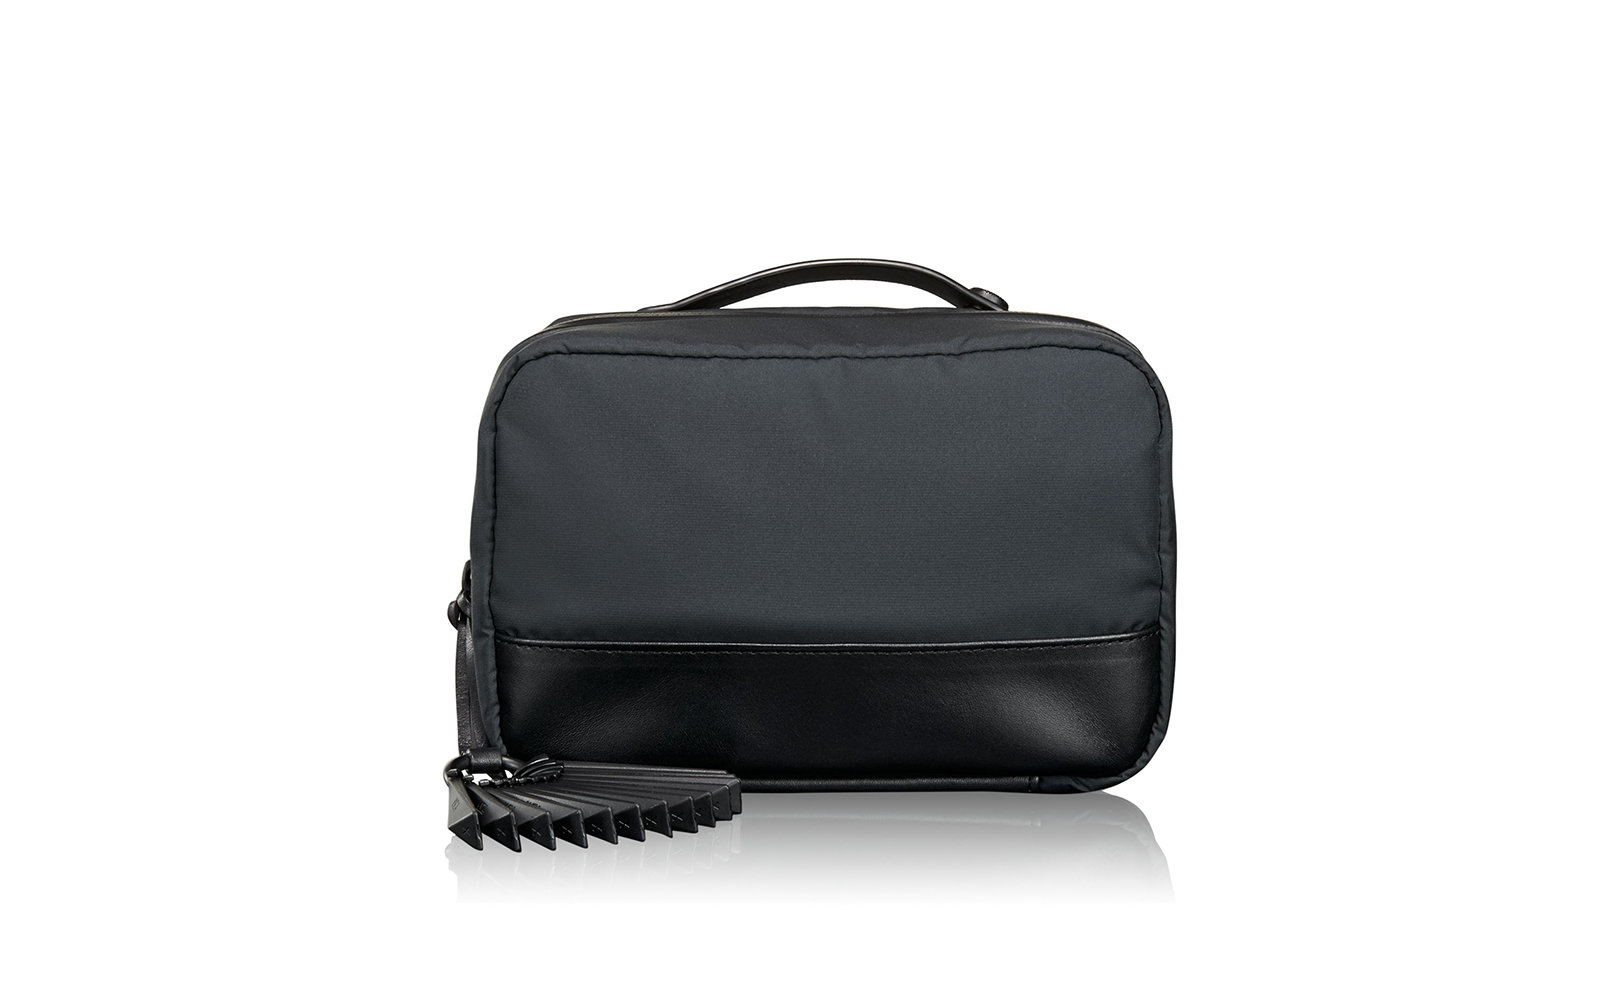 Tumi x Public School Travel Kit